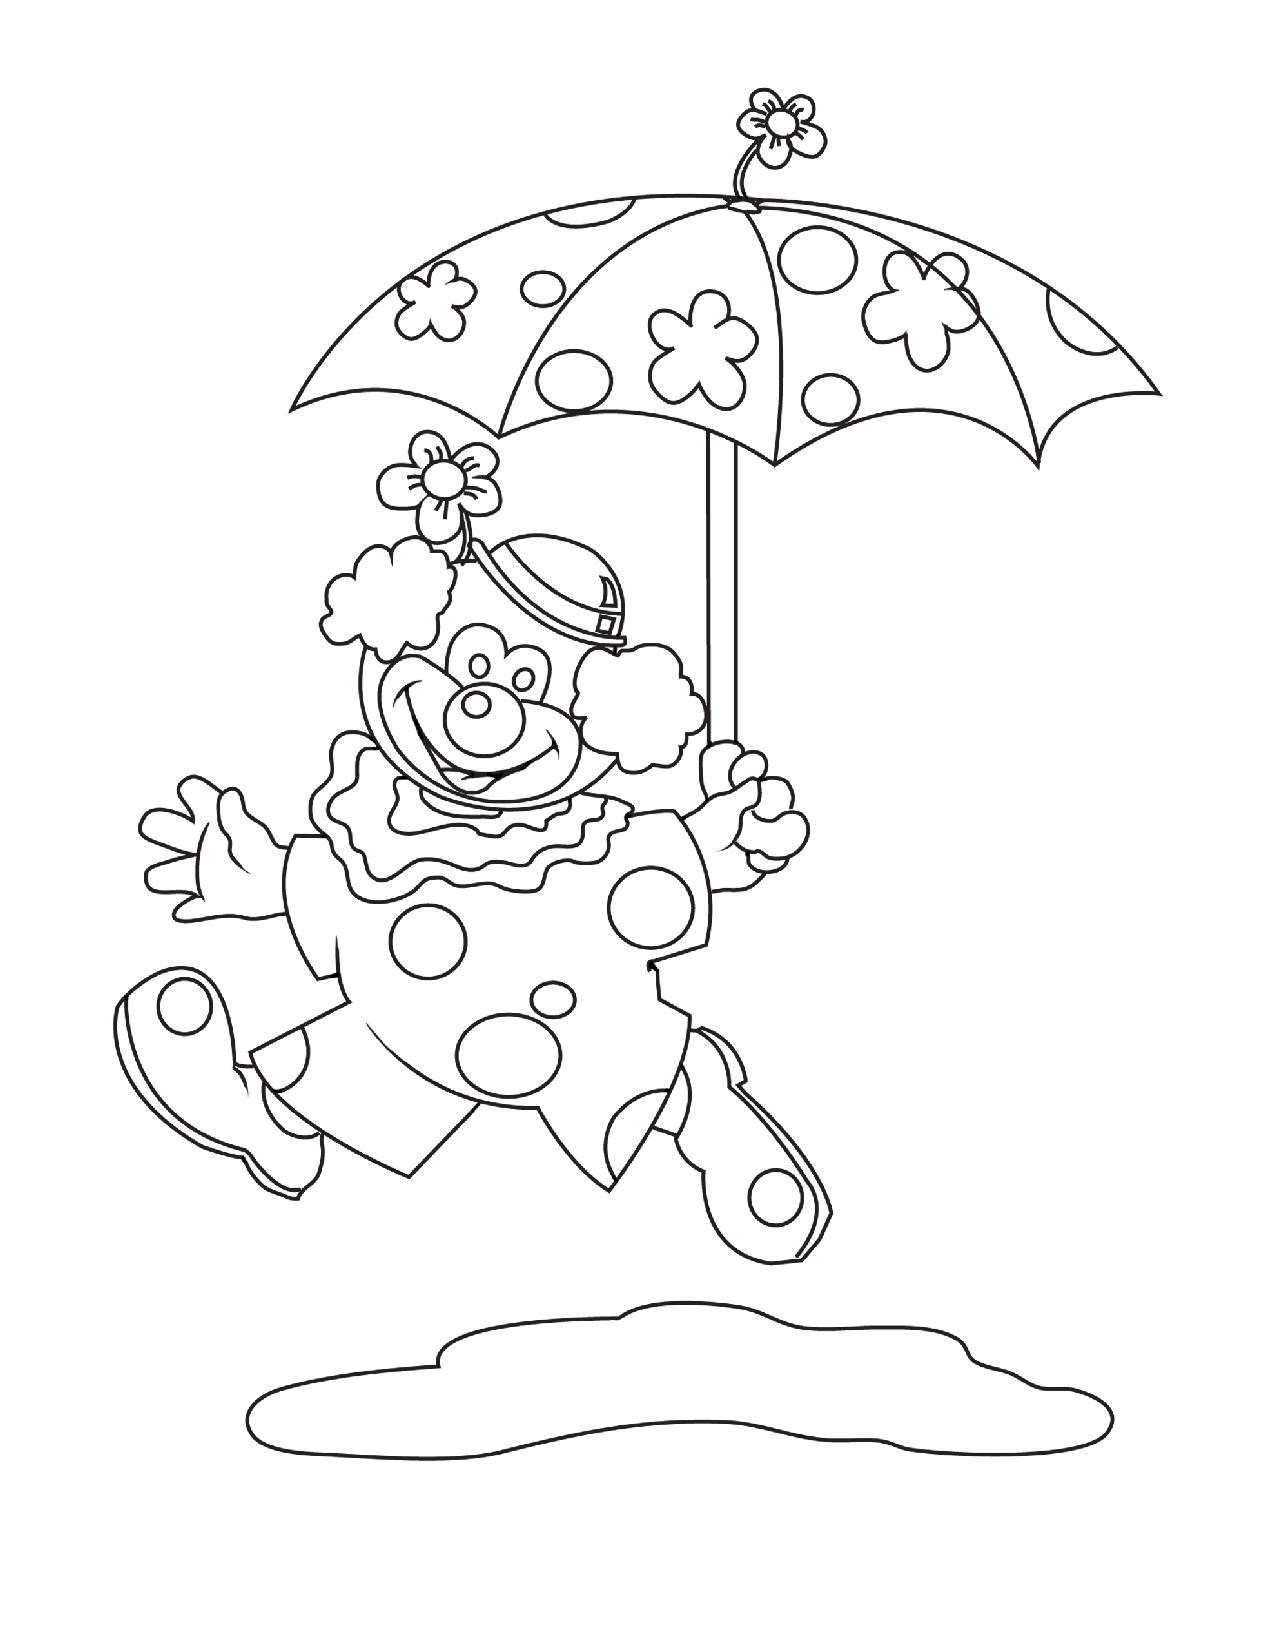 Printable Clown Coloring Pages | Coloring Me